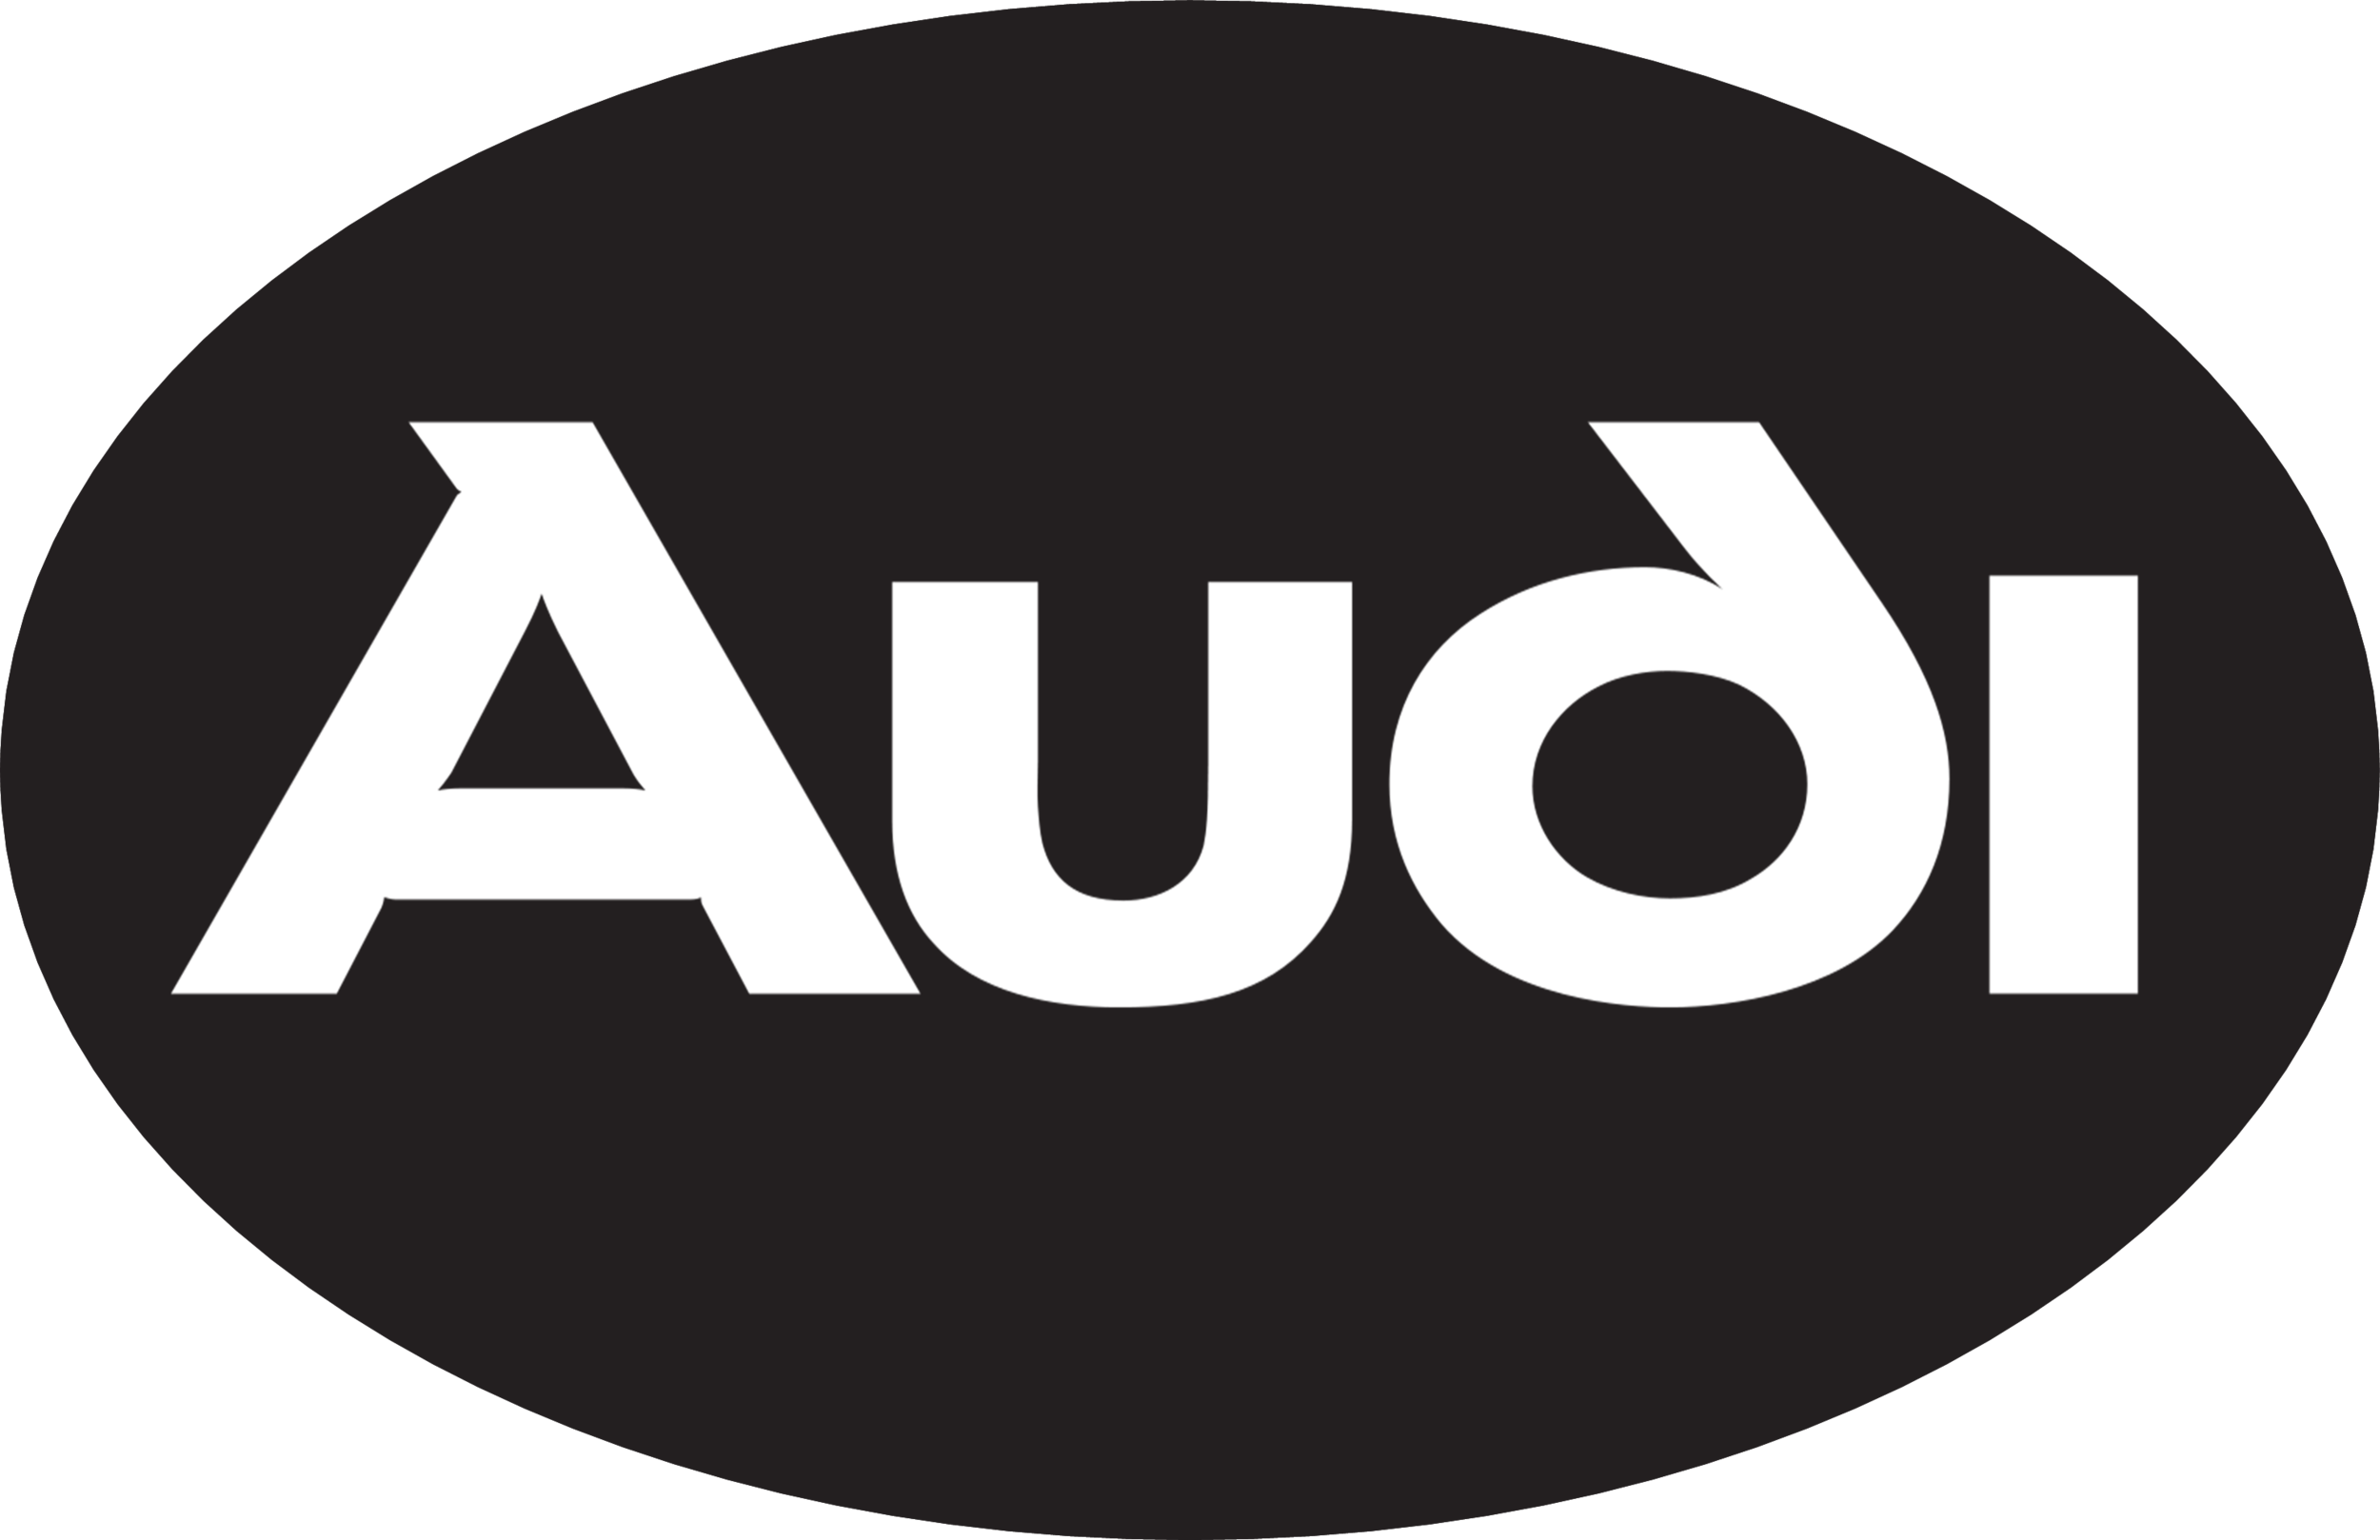 The logo from 1978